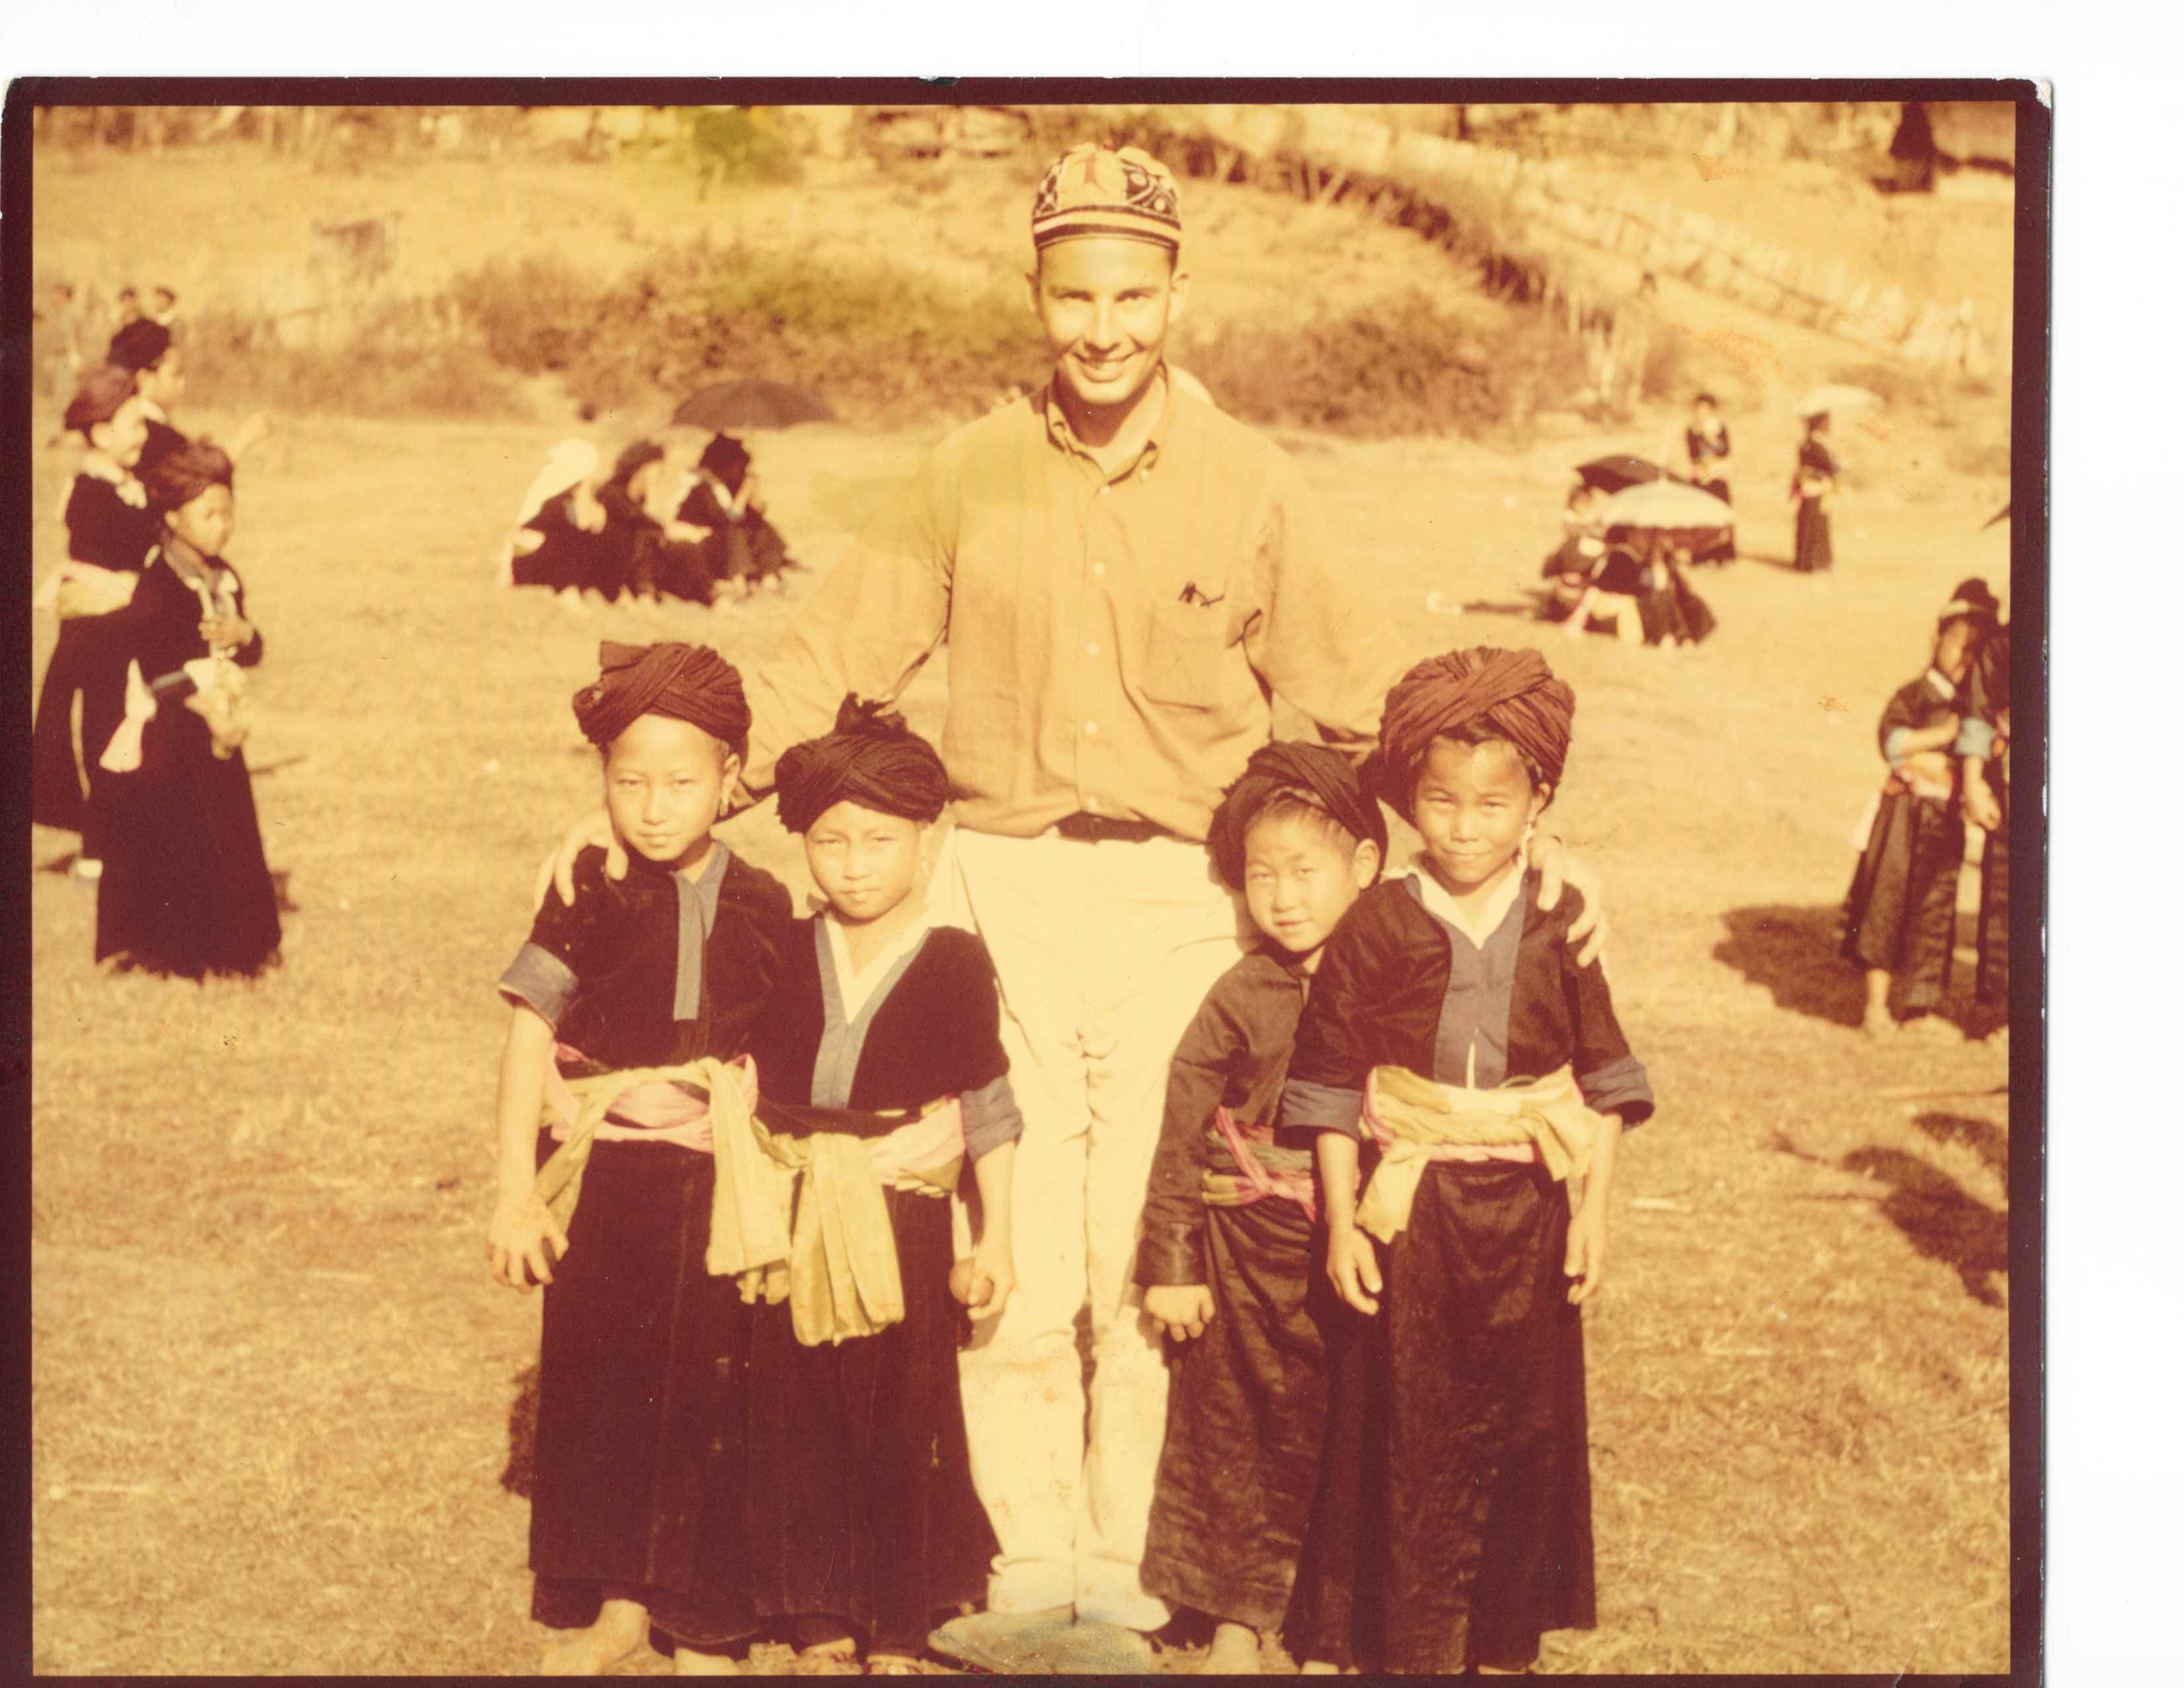 Black and white photograph of Tom Ward with Hmong children in Sam Thong, Laos in 1965